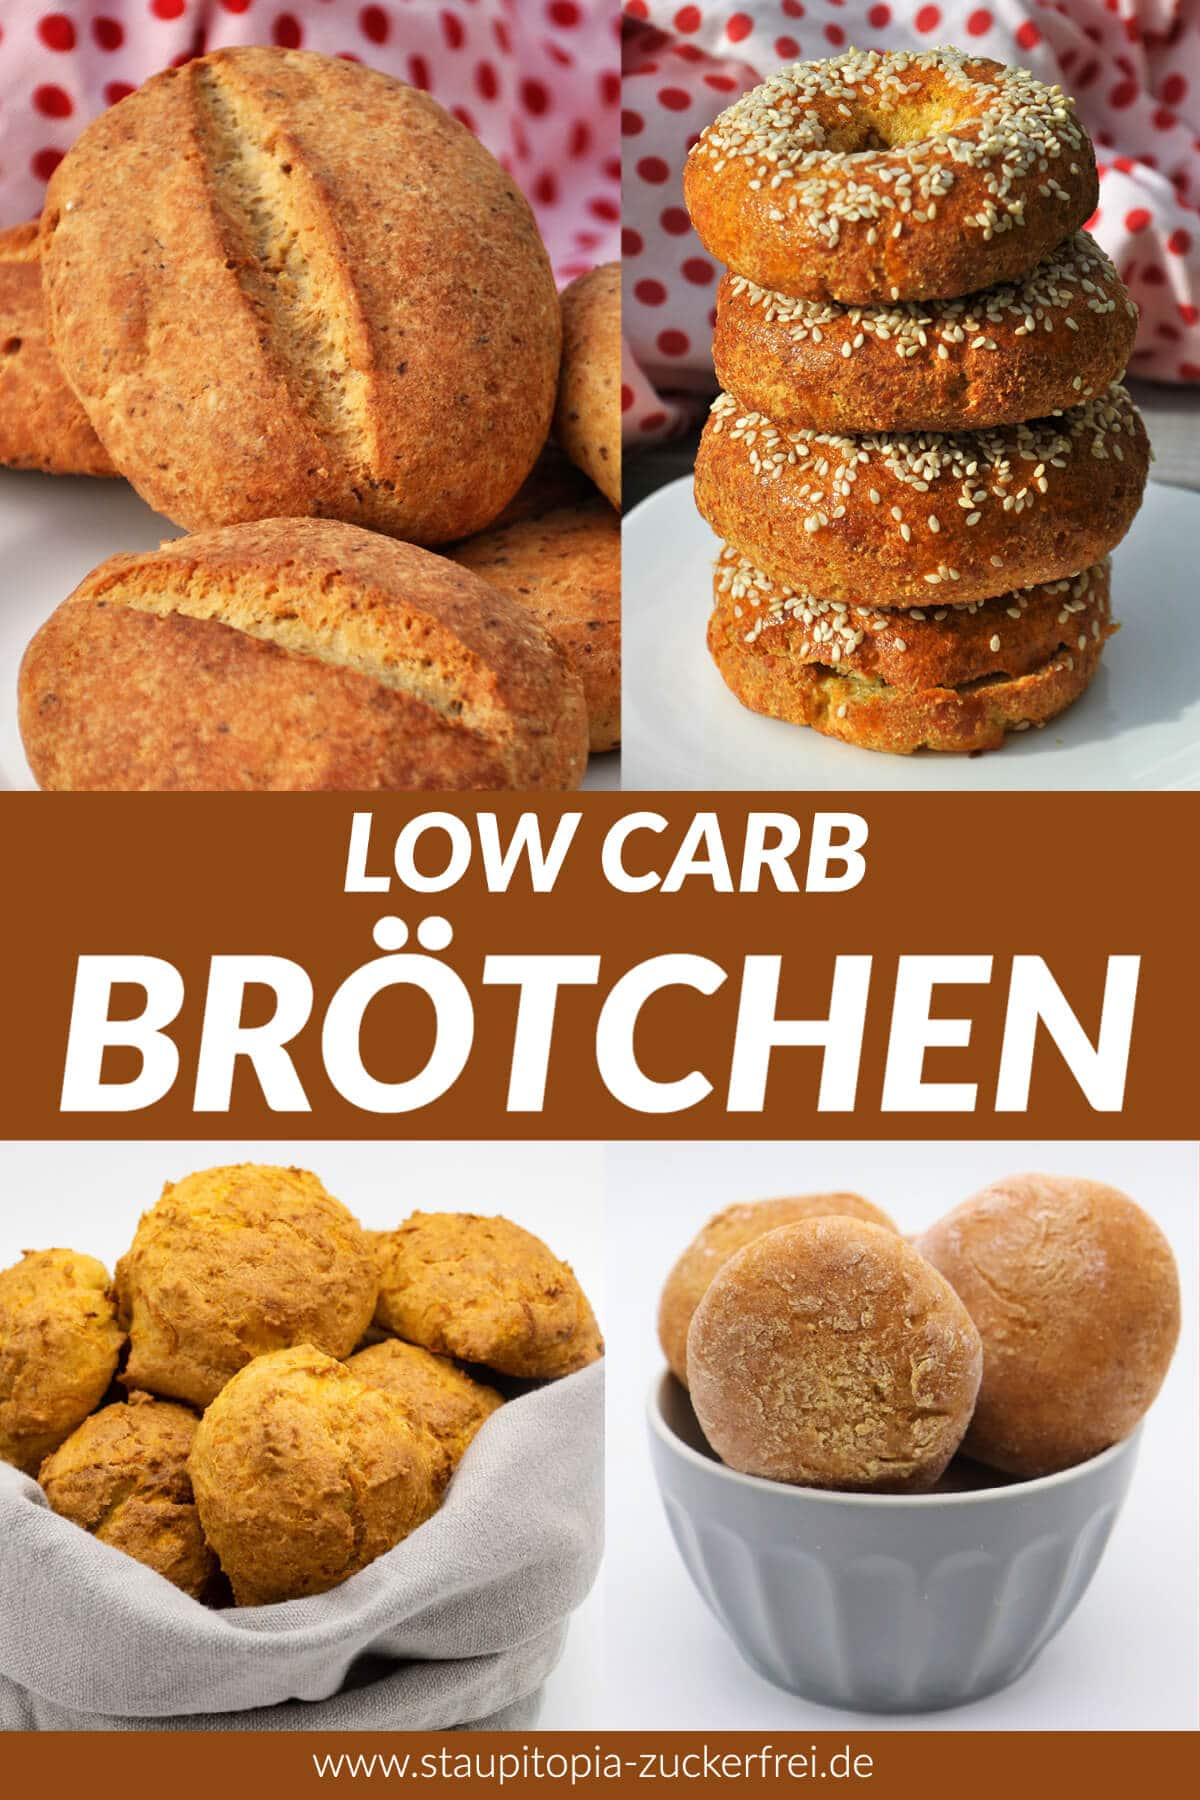 Low Carb Brötchen backen ohne Kohlenhydrate